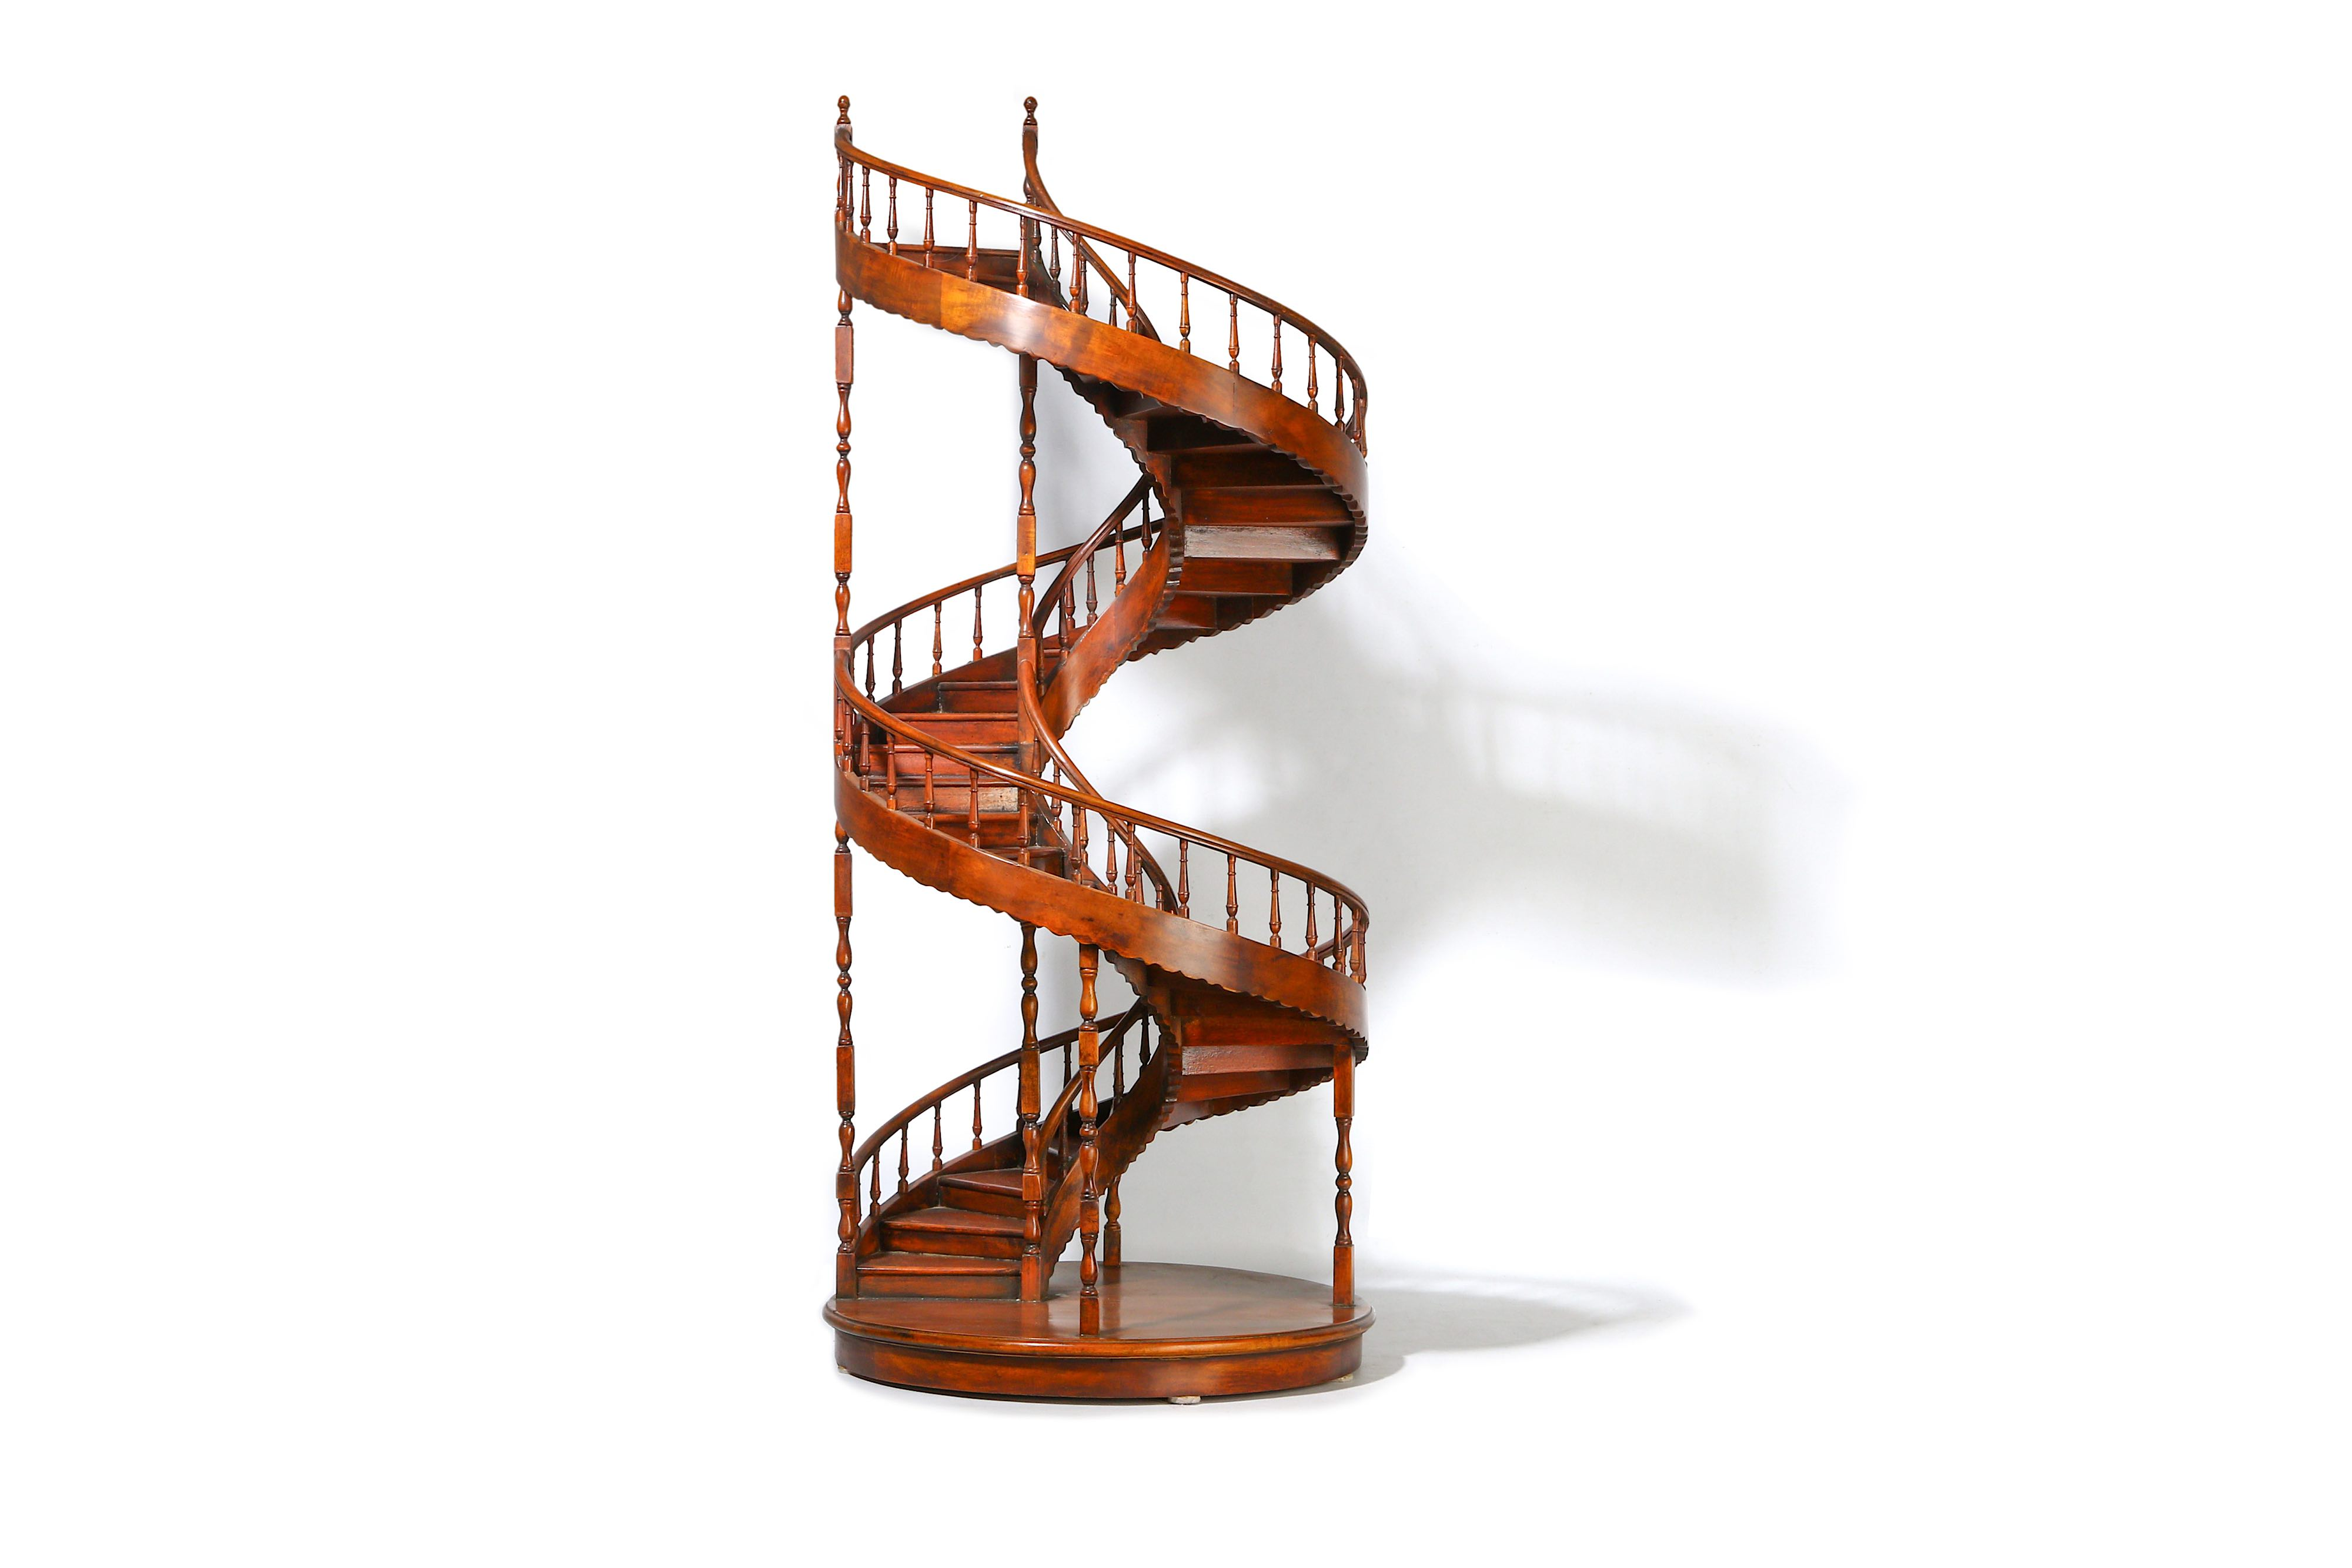 A LARGE EARLY 20TH CENTURY MAHOGANY APPRENTICE'S ARCHITECTURAL MODEL OF A SPIRAL STAIRCASE - Image 2 of 9